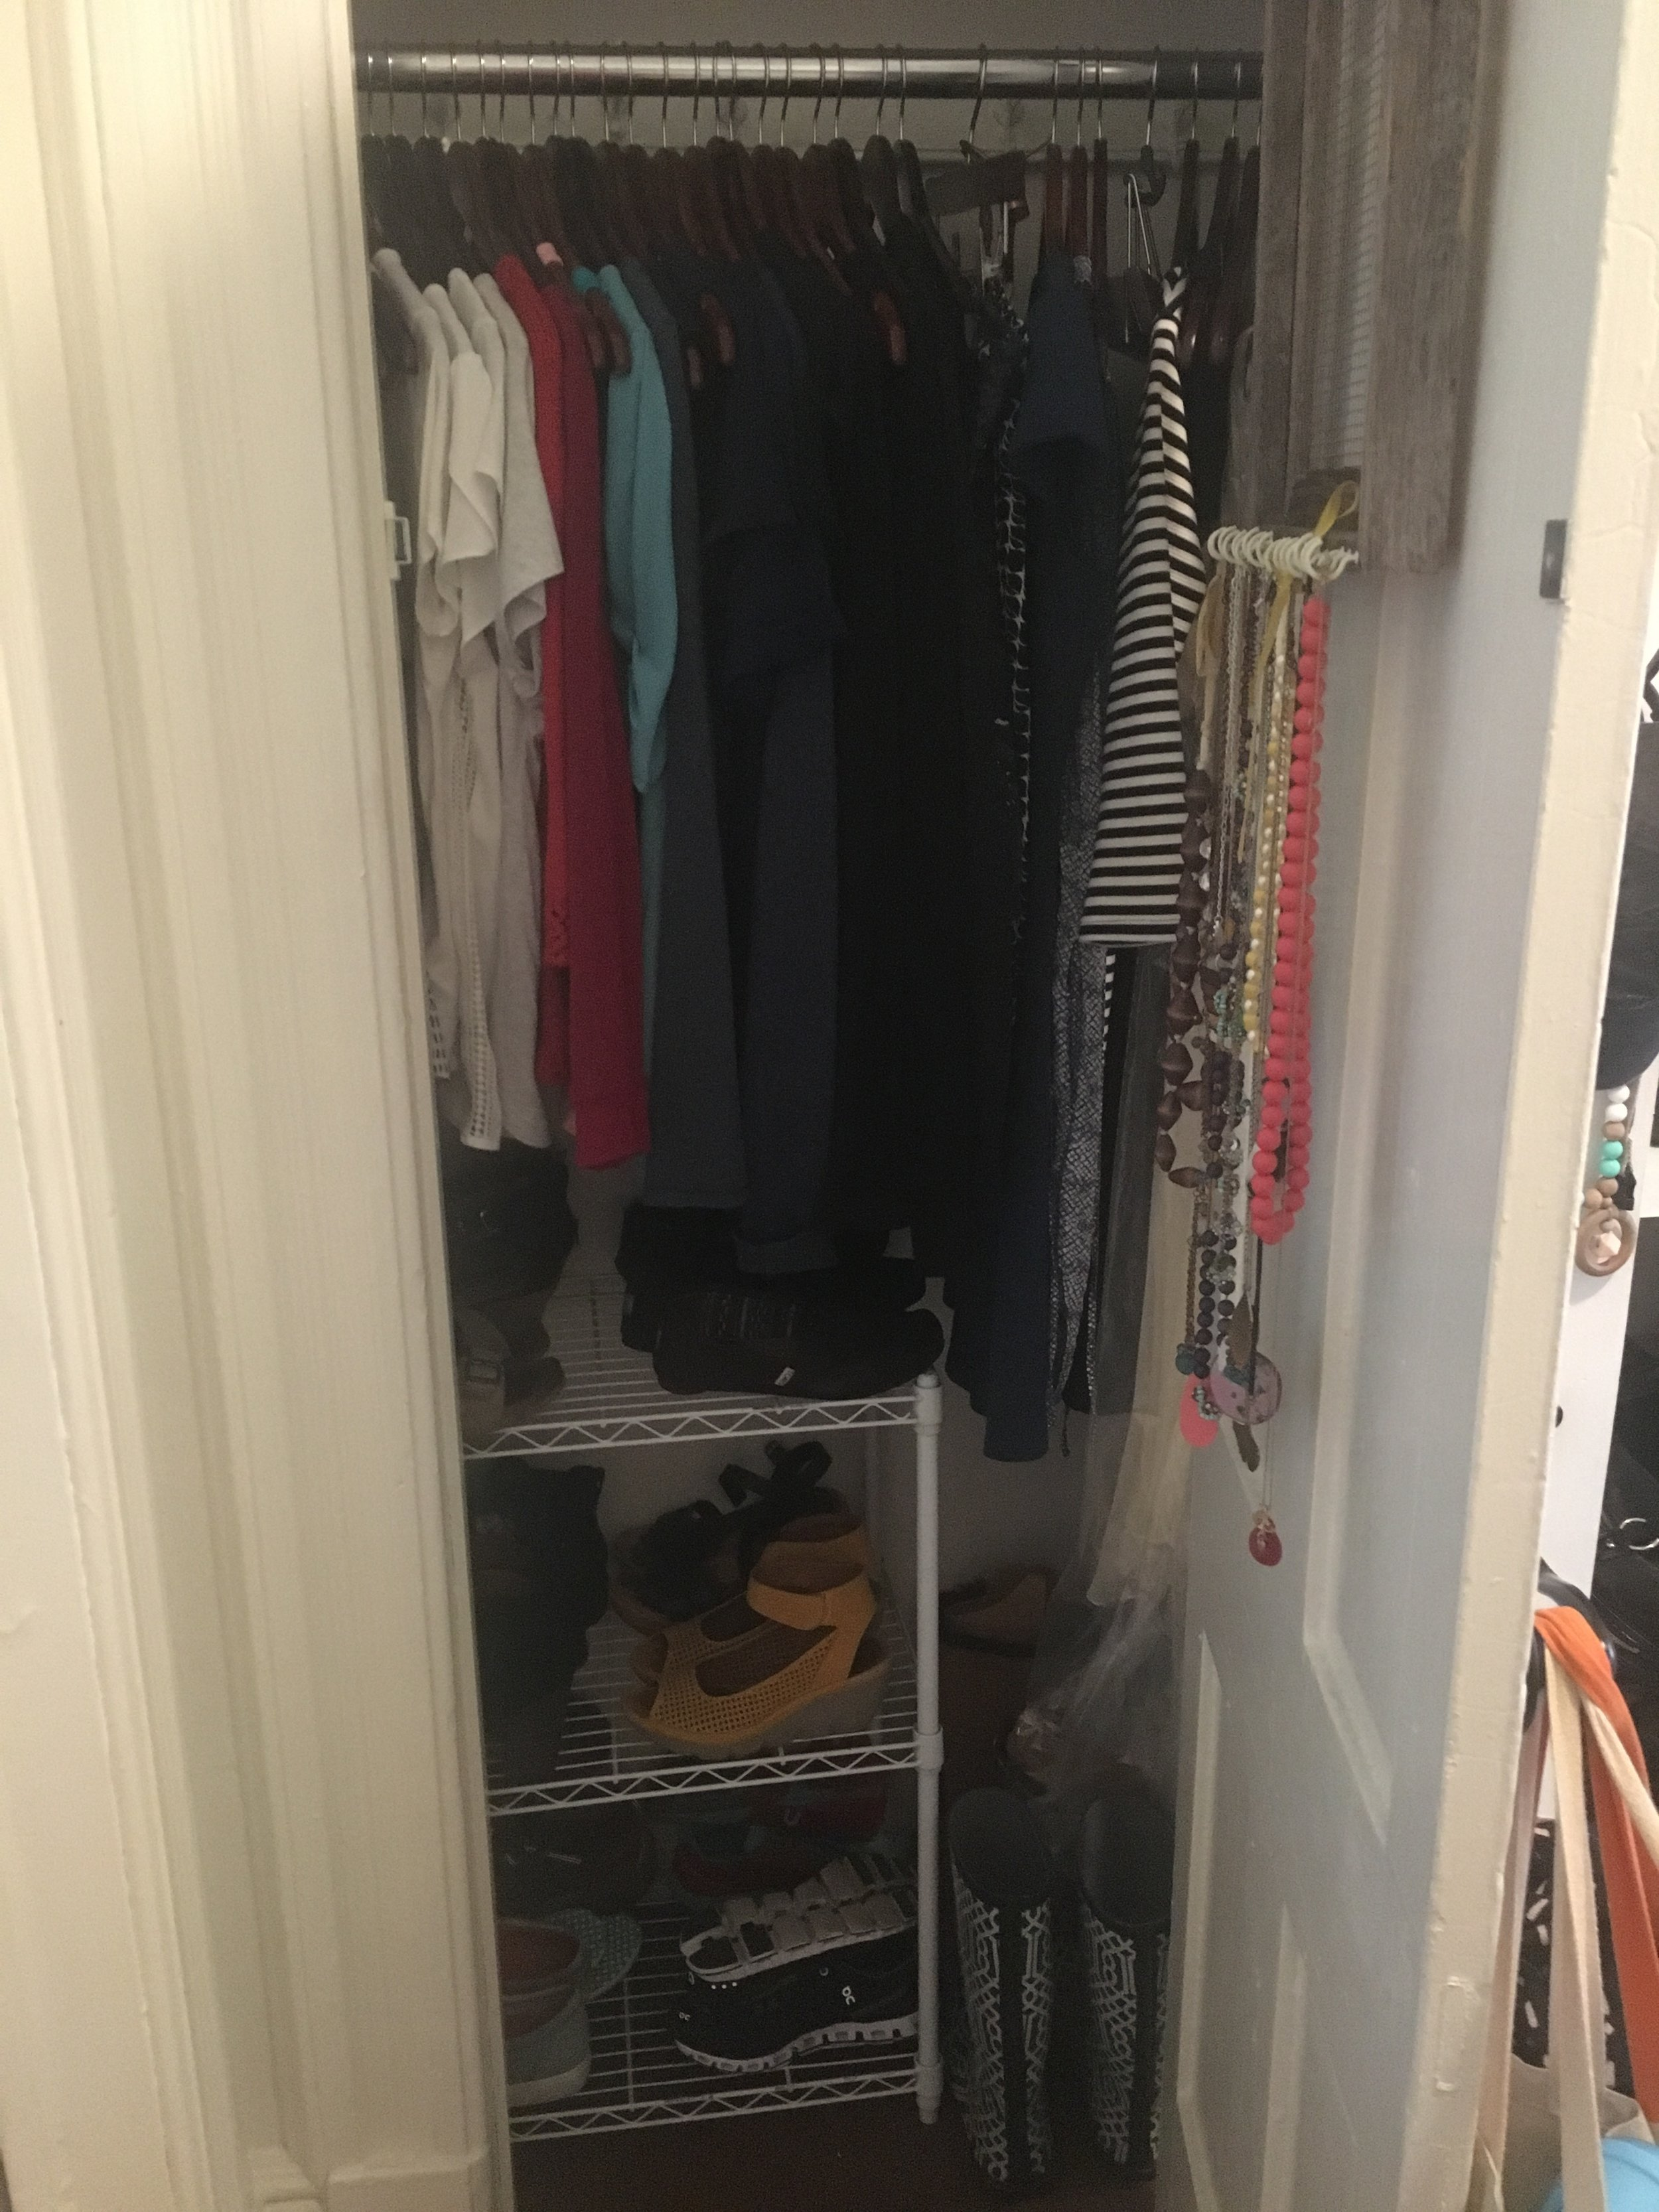 My closet in all its glory. See those bright necklaces? That's where the splash of color comes in!